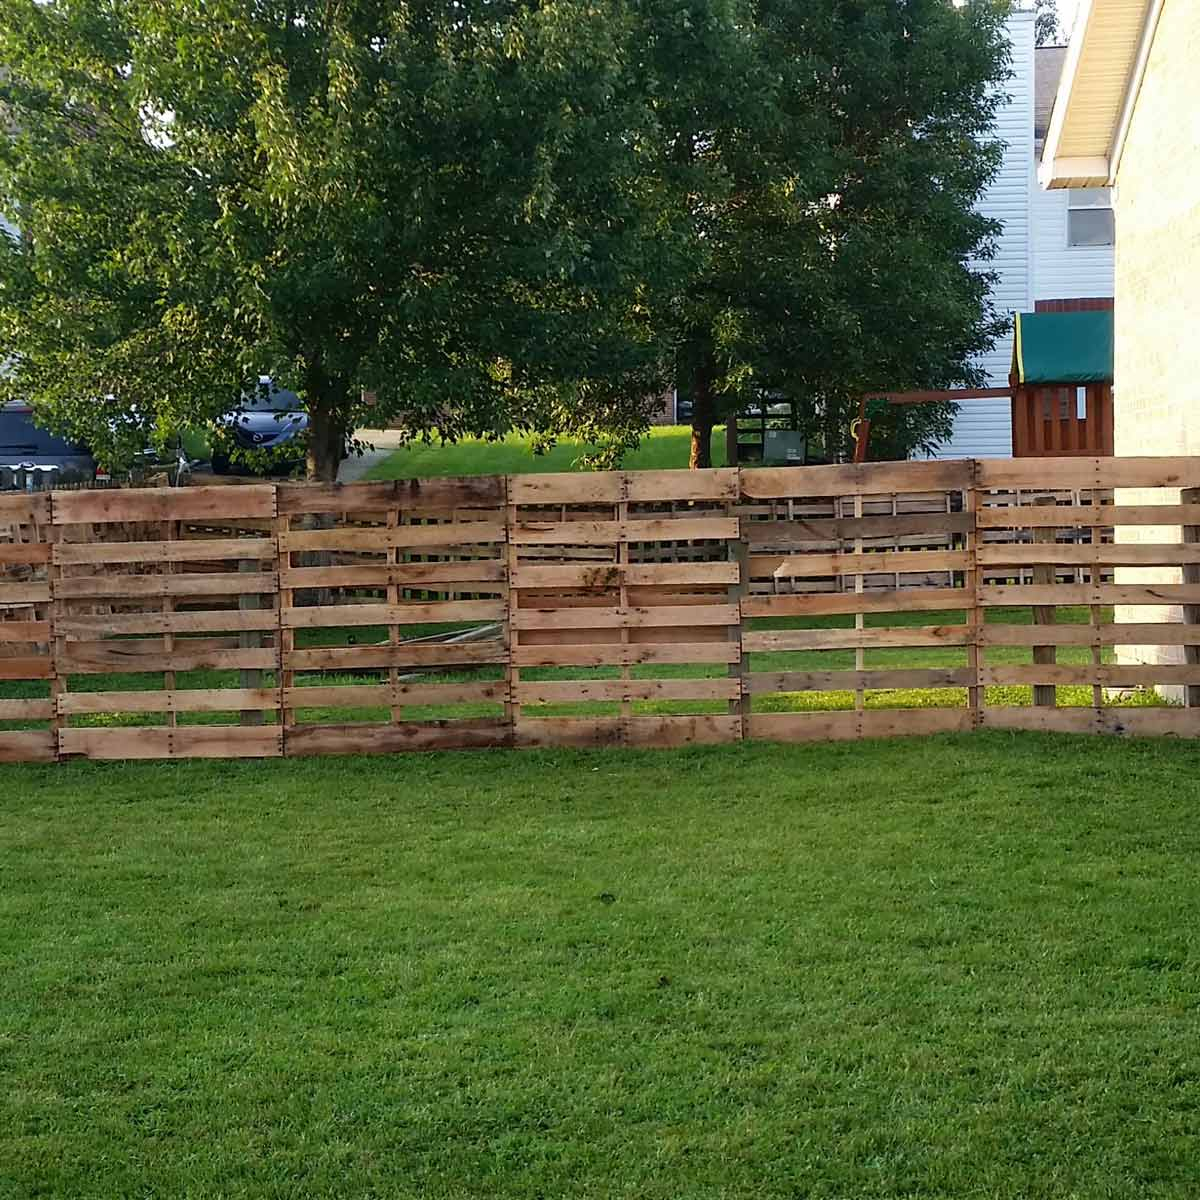 Yard Fencing 10 Modern Fence Ideas Family Handyman intended for 10 Smart Initiatives of How to Improve Fences For Backyard